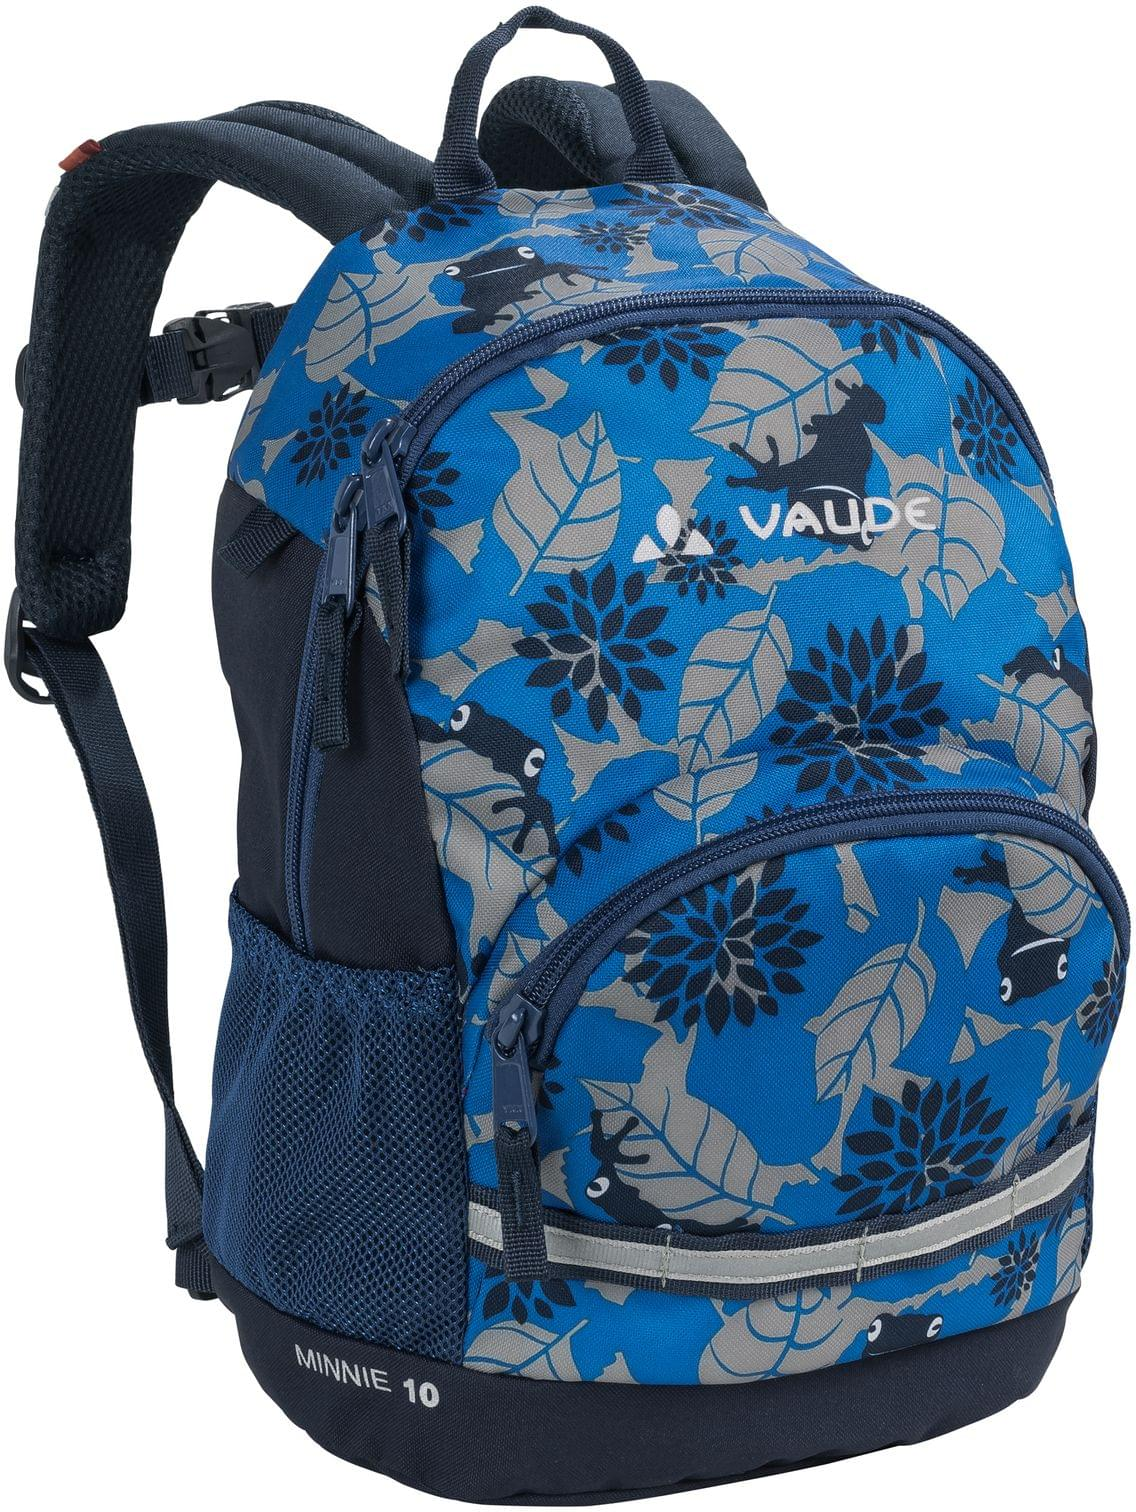 Vaude Minnie 10 - radiate blue uni